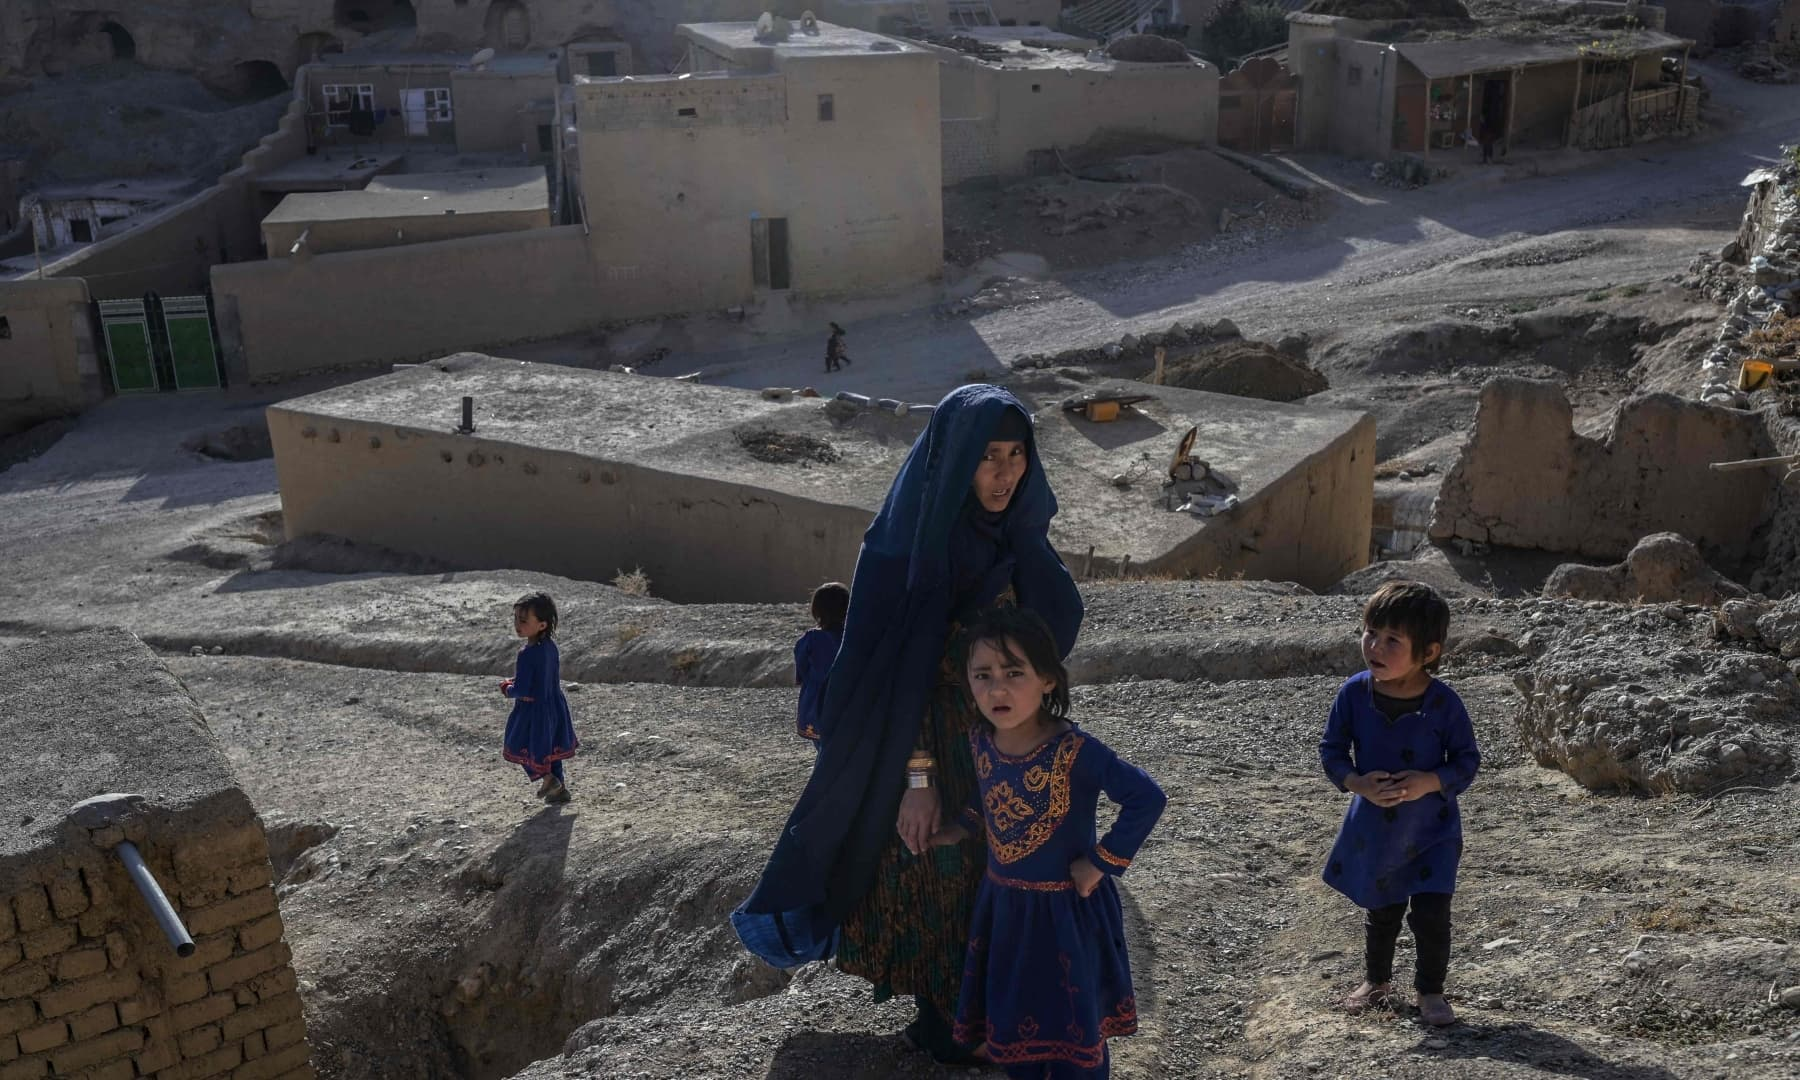 A Hazara ethnic woman and children walk through a village where people still live as they did centuries ago in Bamiyan, Afghanistan on October 3, 2021. — AFP